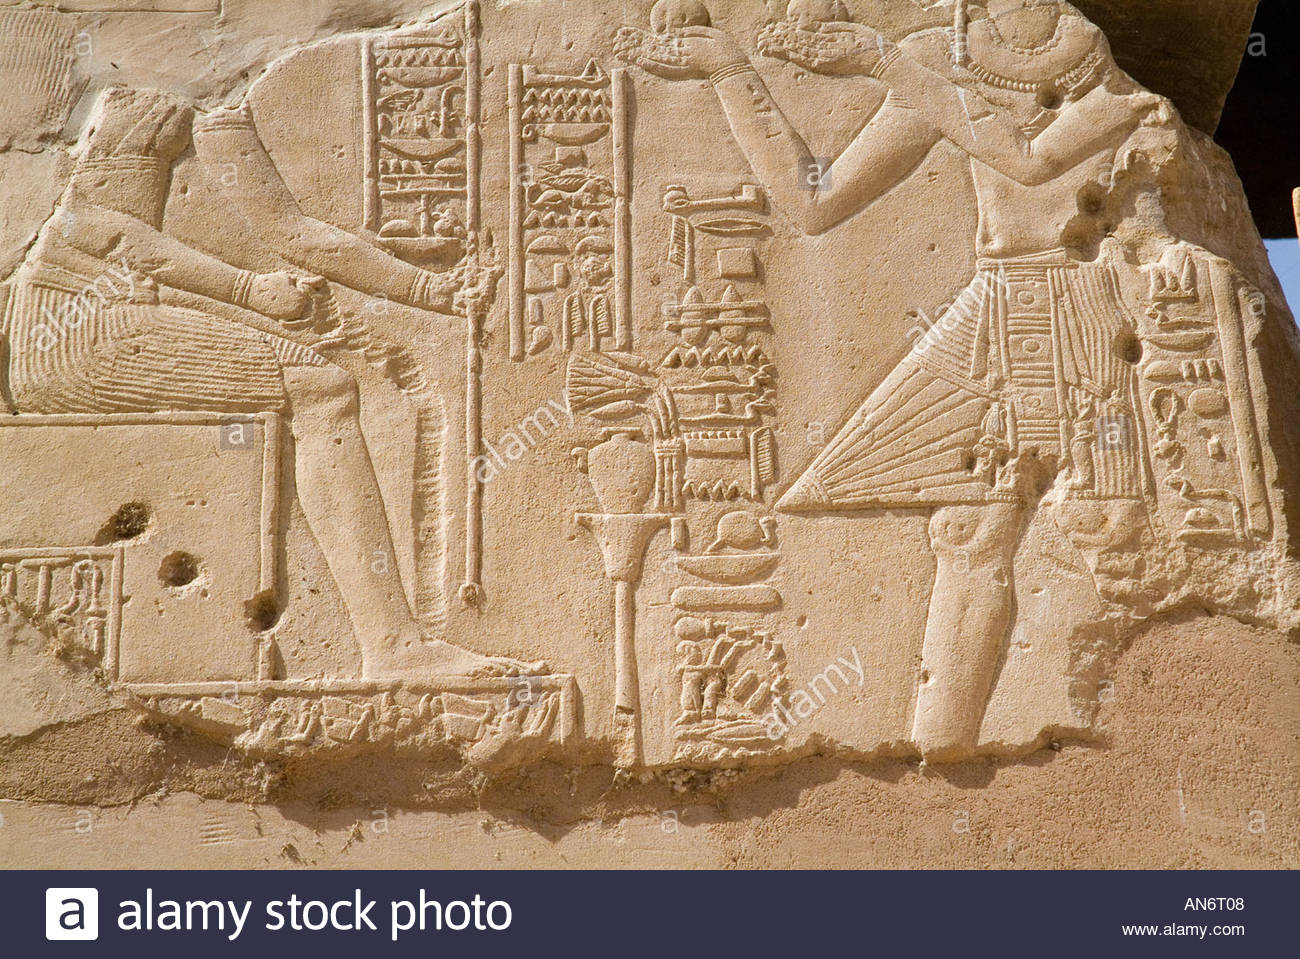 Ancient egyptian bas relief carving in iconic style of